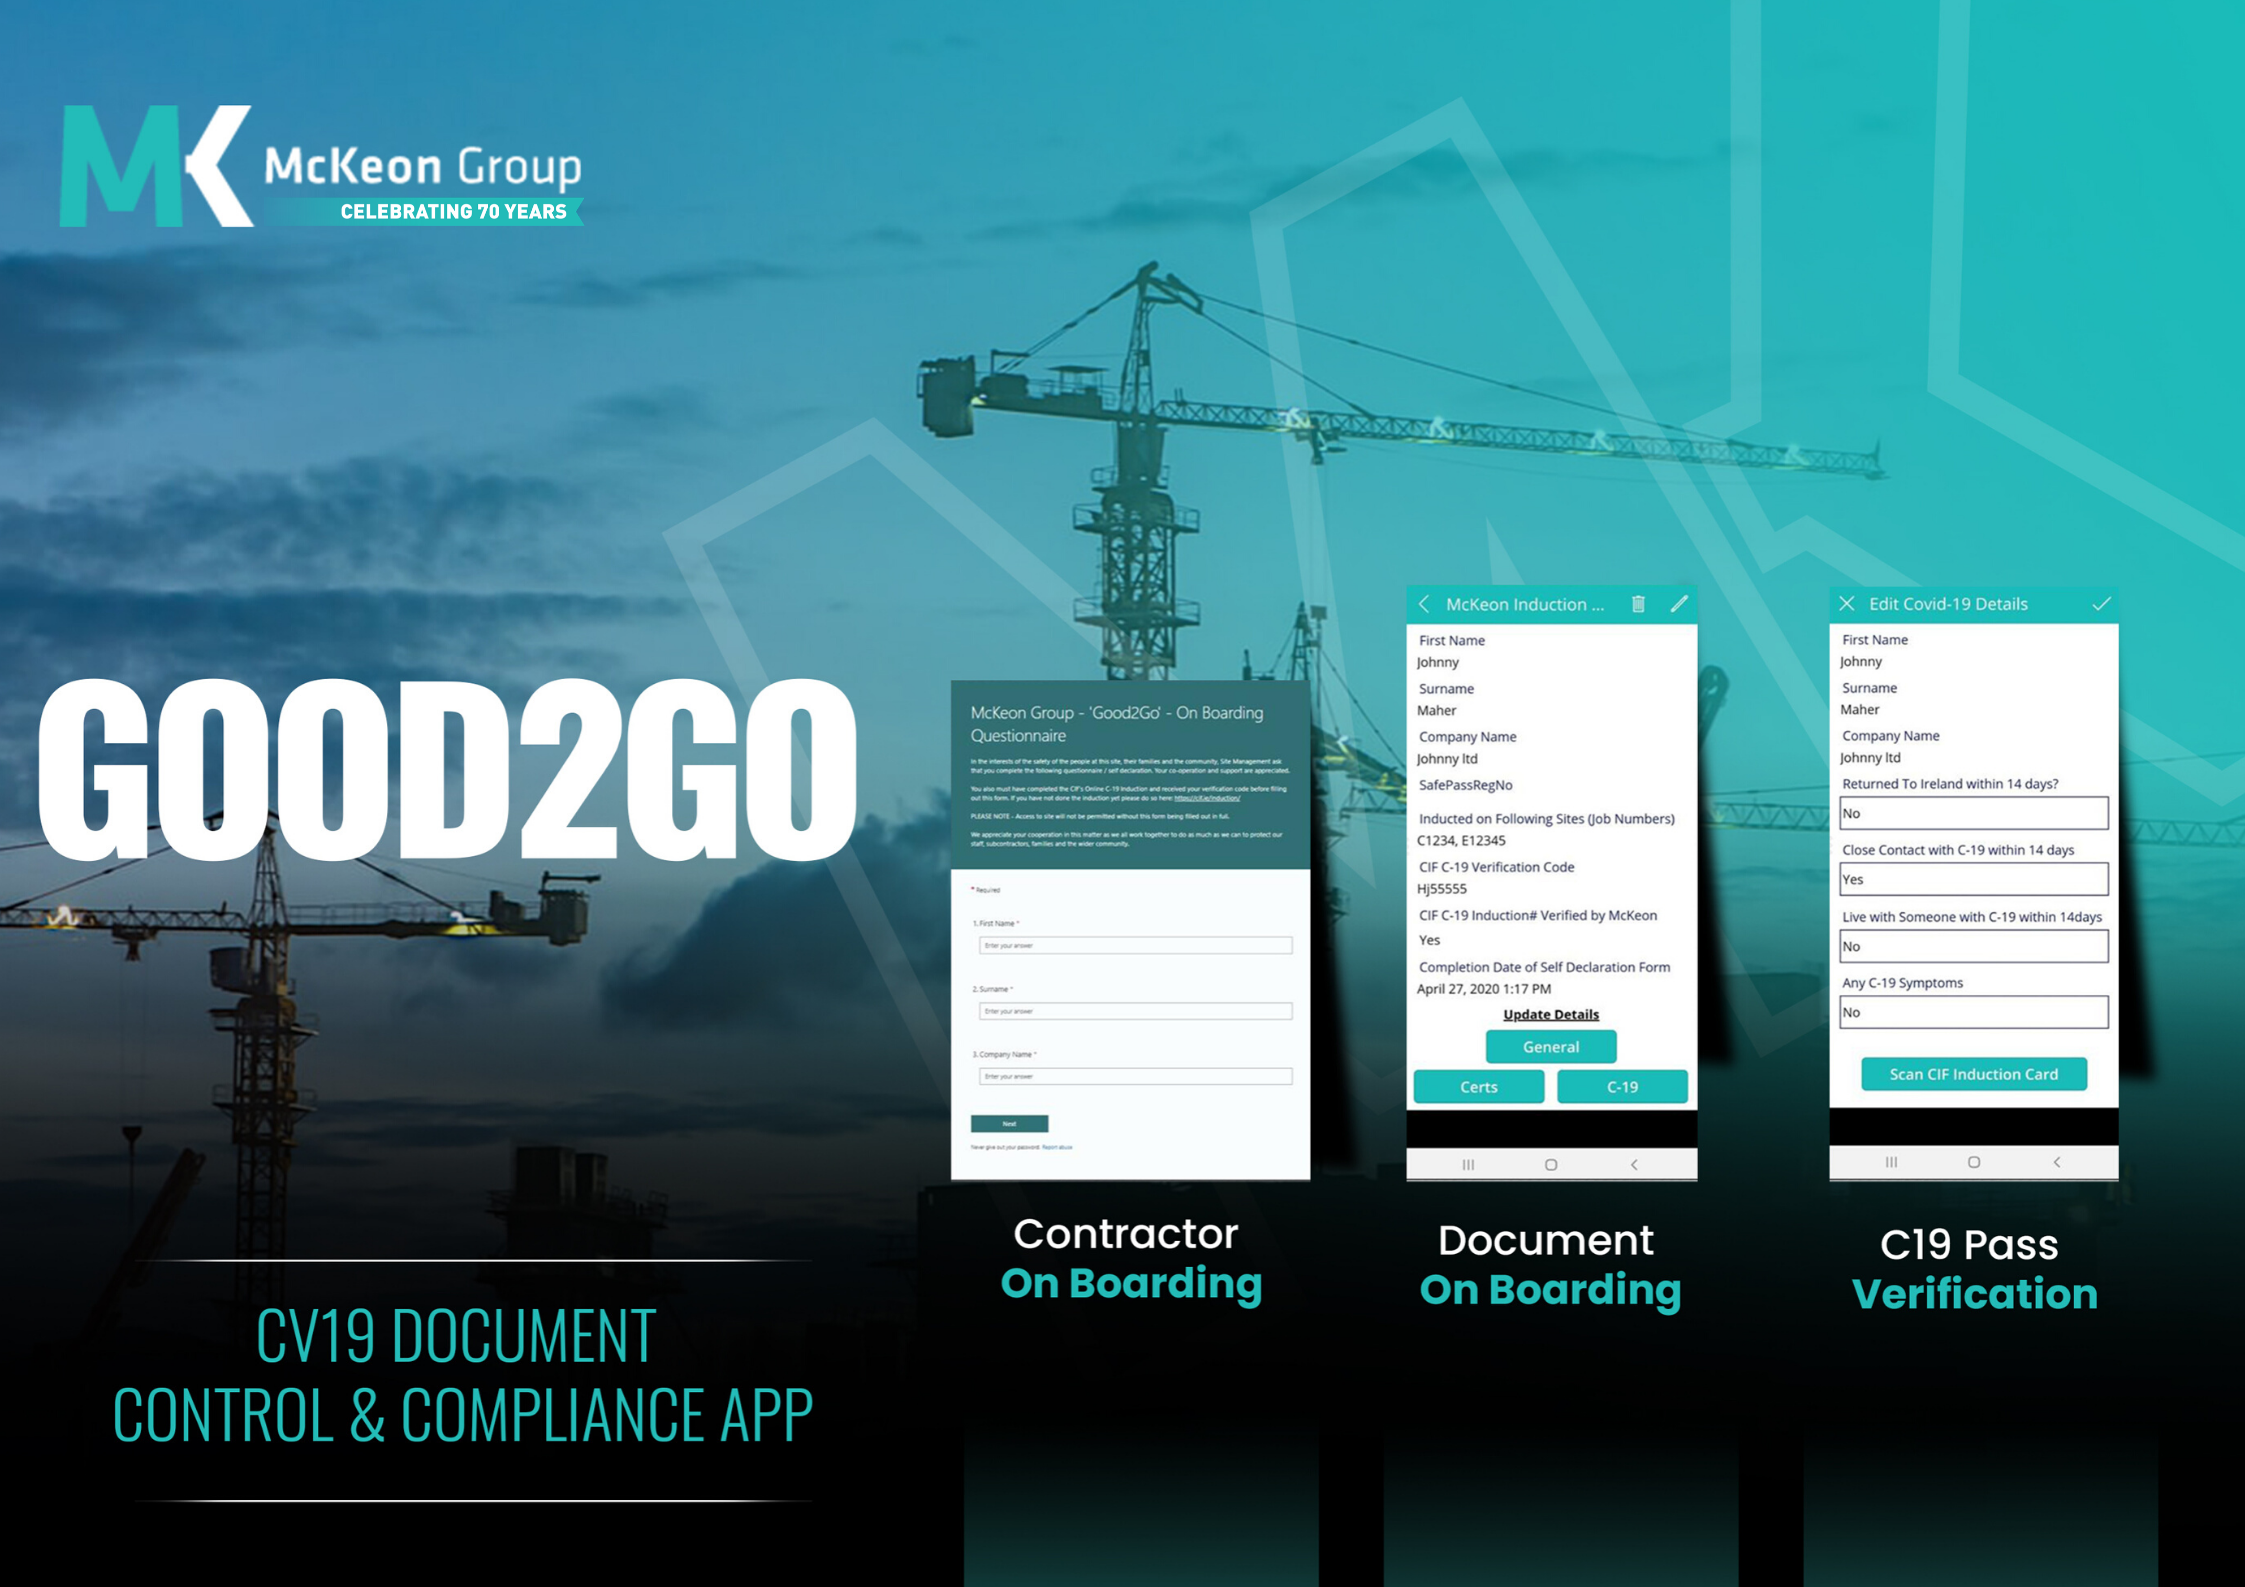 Construction Network Ireland: McKeon Group Develops Good2Go Construction App for the Industry